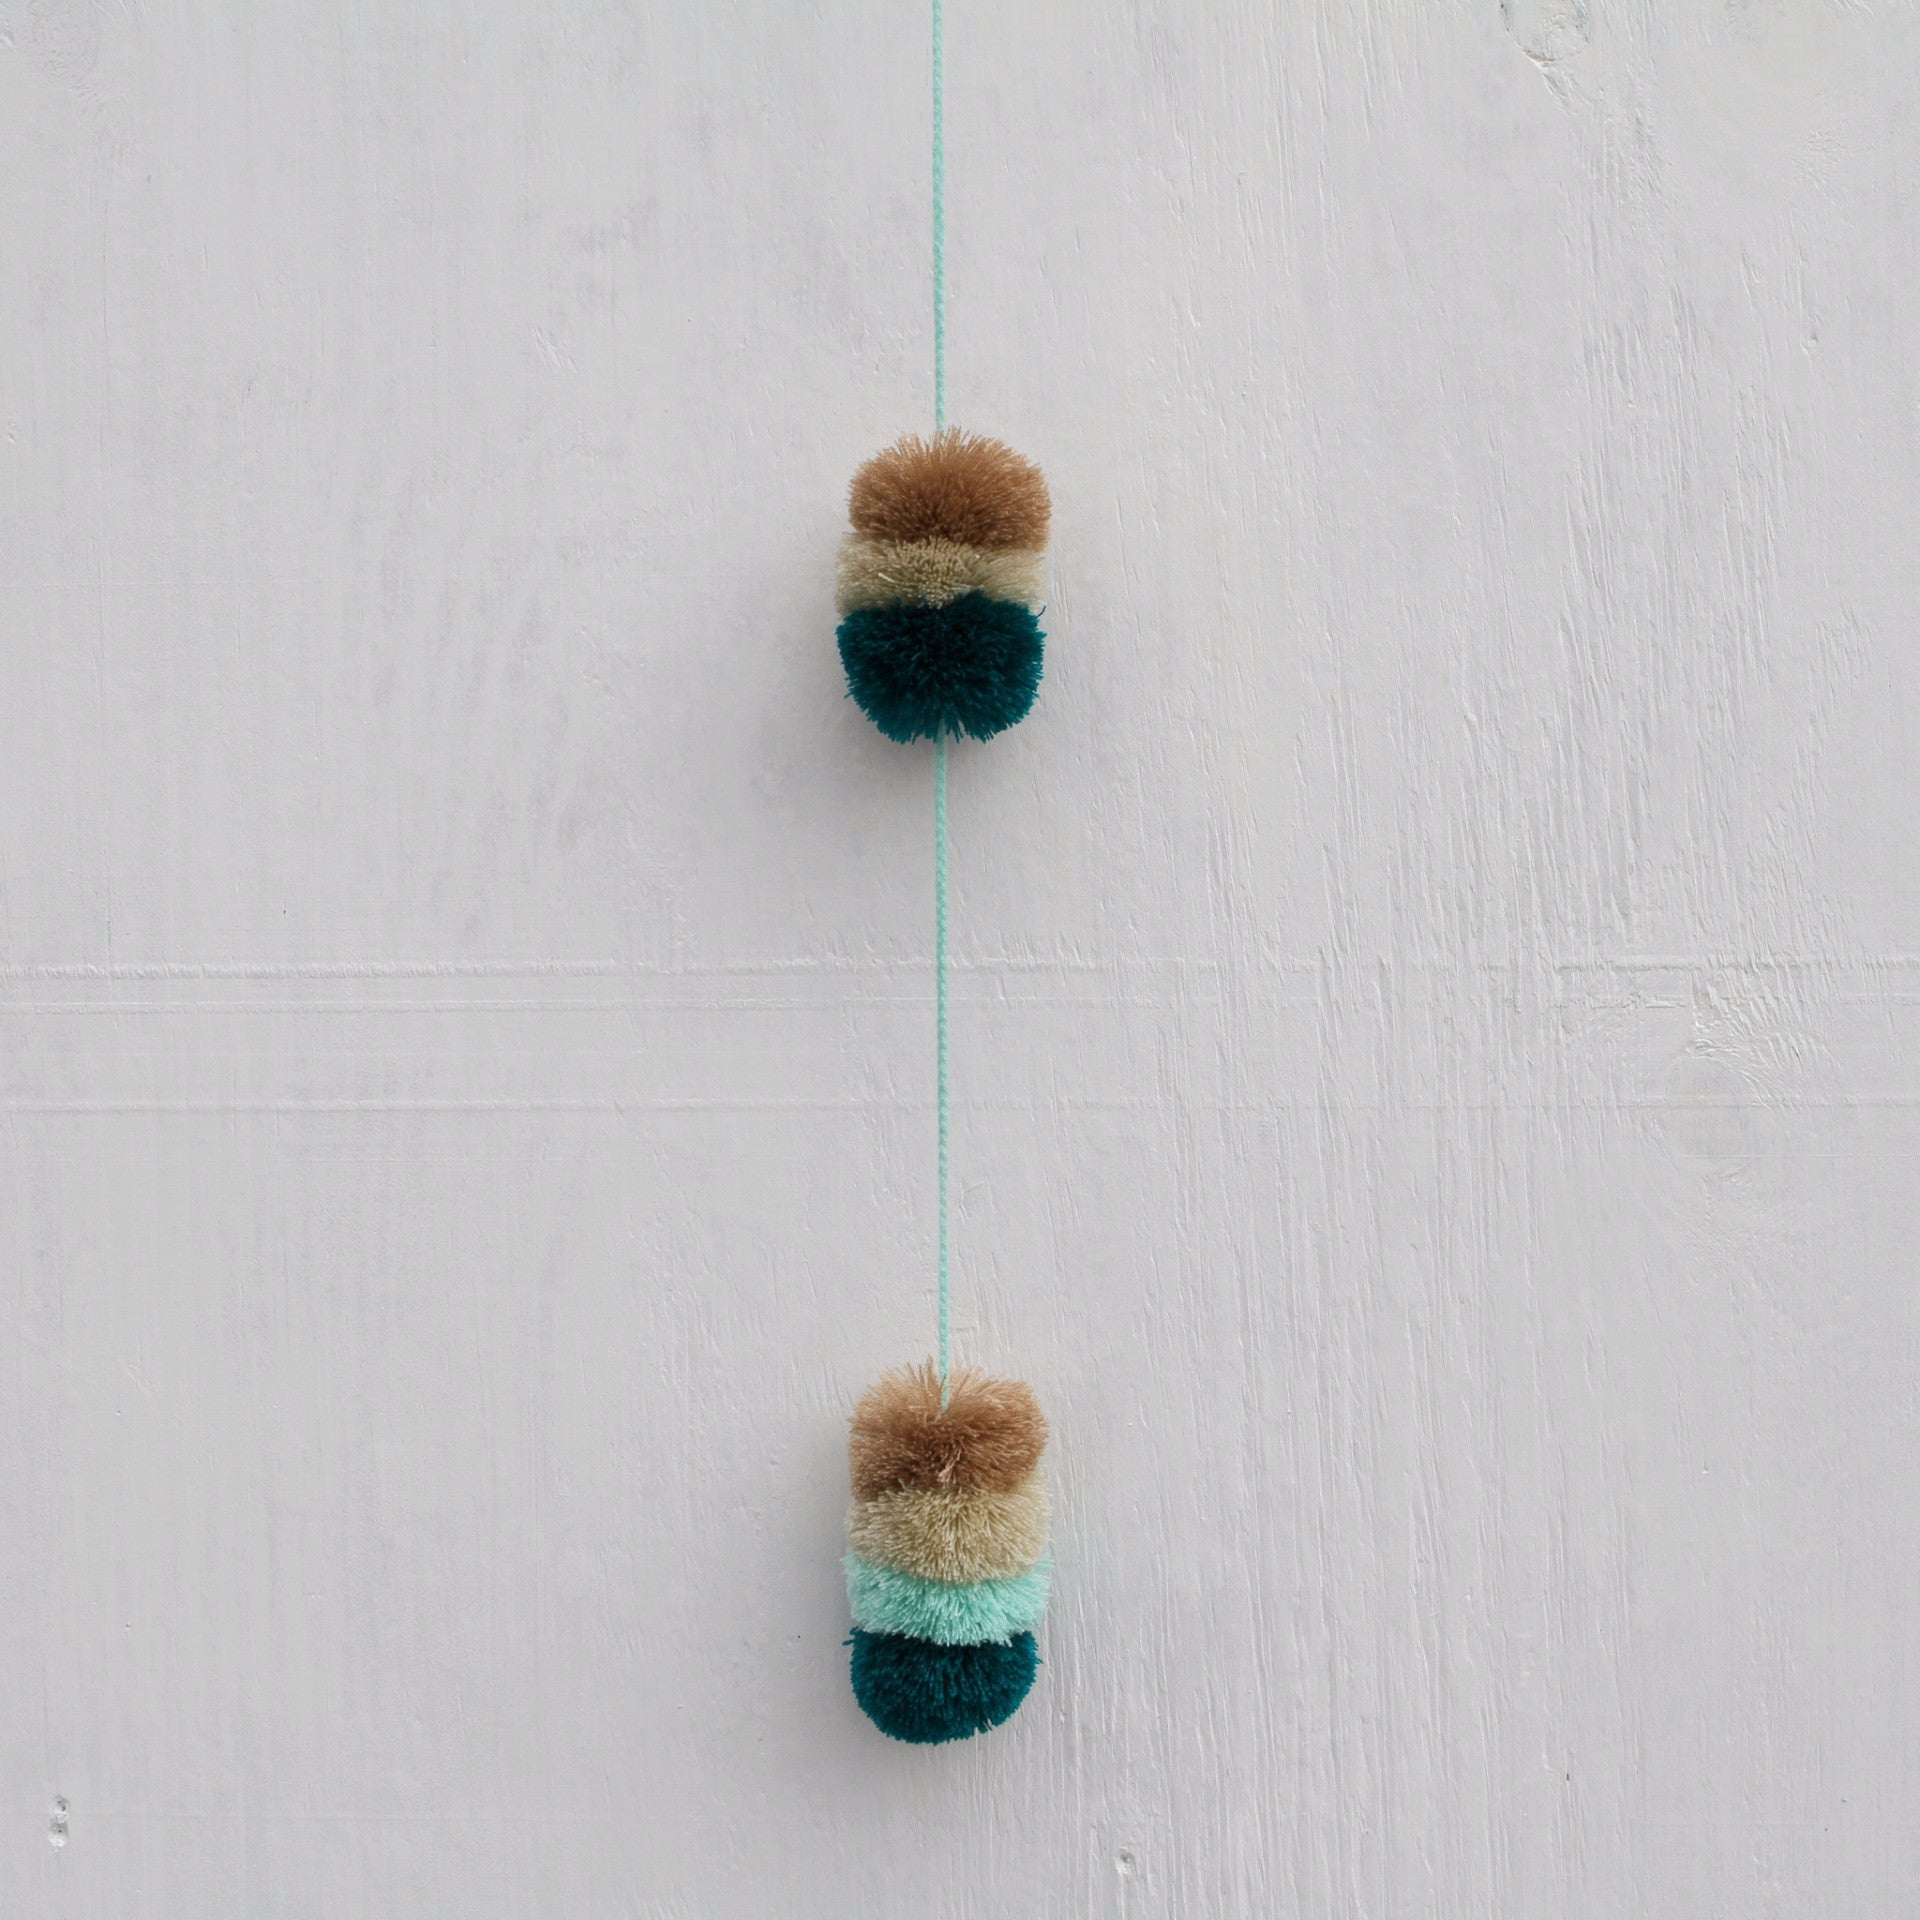 Marine Layer Pompom Wow Hanging